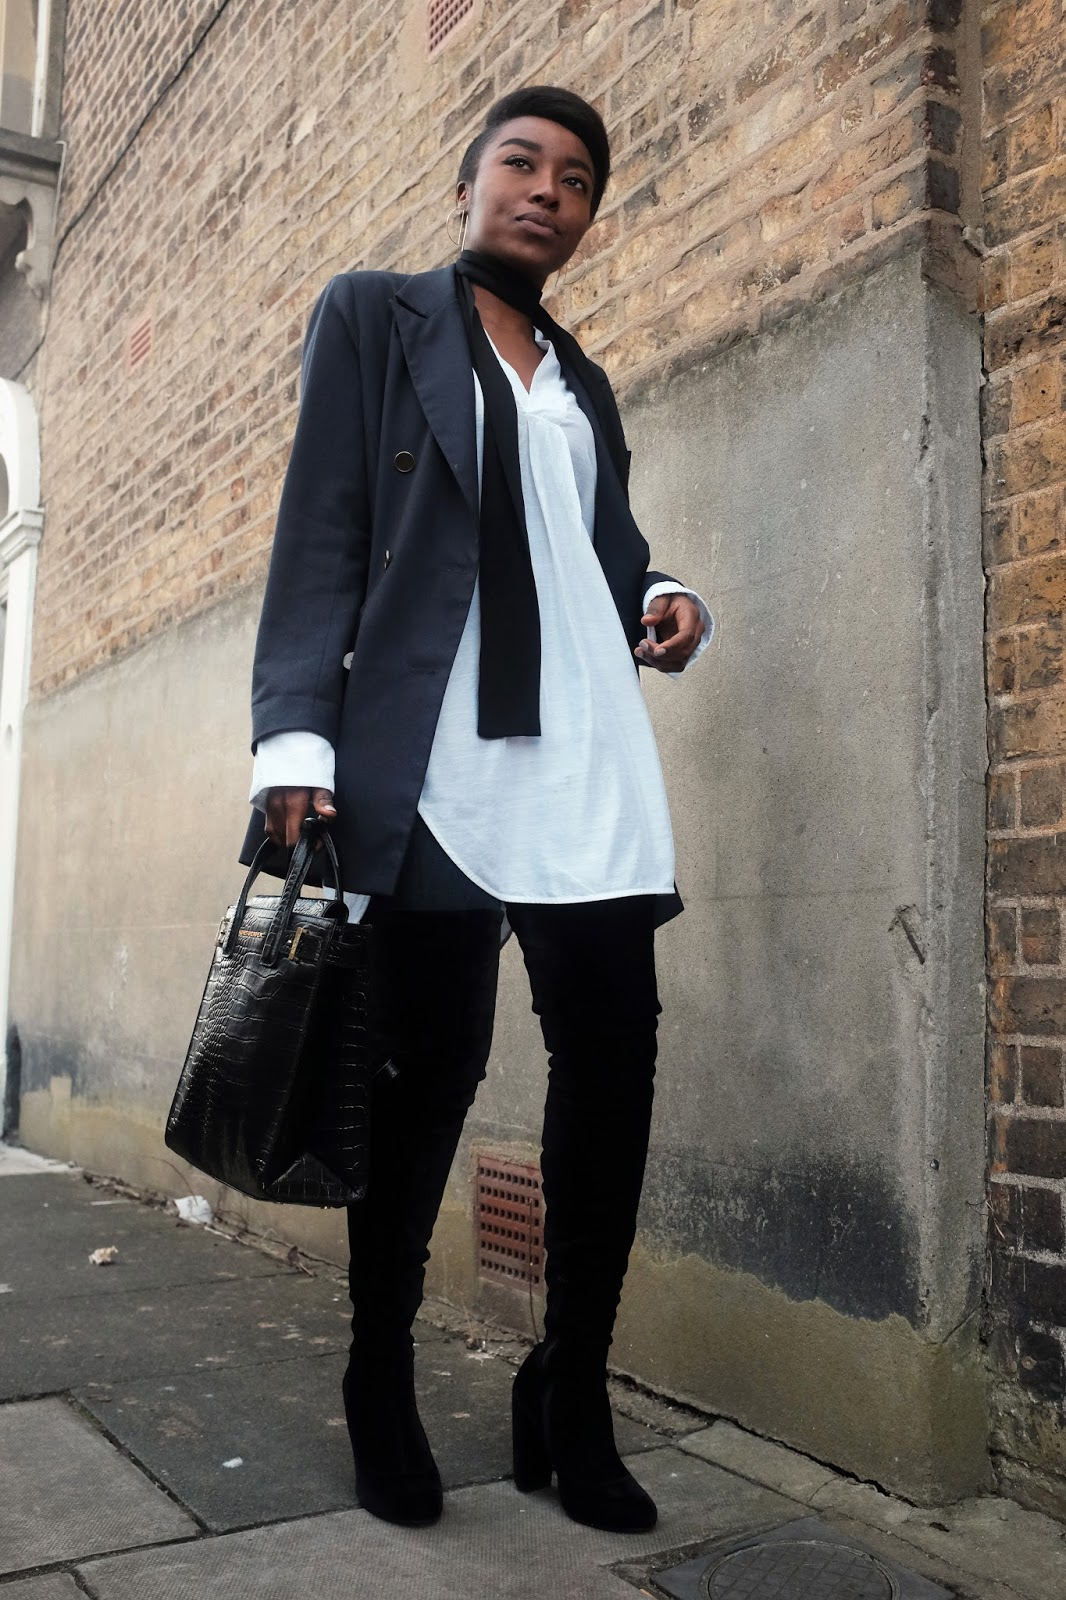 Topshop Archive Blazer Black Asos Skinny Scarf Oversized White Weekday Shirt Kurt Geiger London Black Croc Backpack Velvet Black Wolf Carvela Kurt Geiger Thigh High Boots